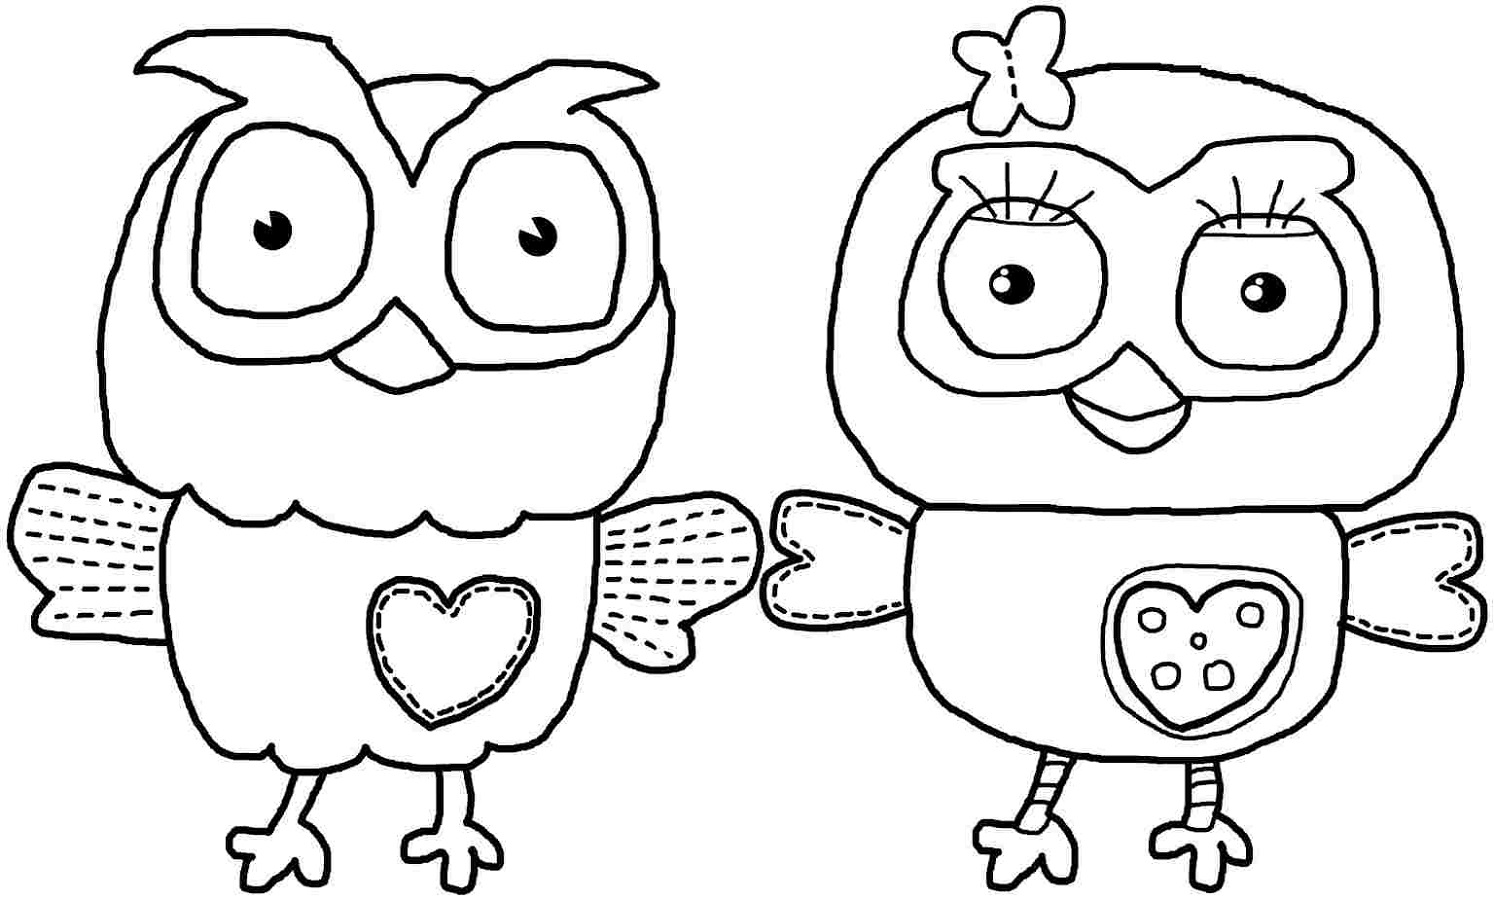 Free Printable Coloring Sheets for Children